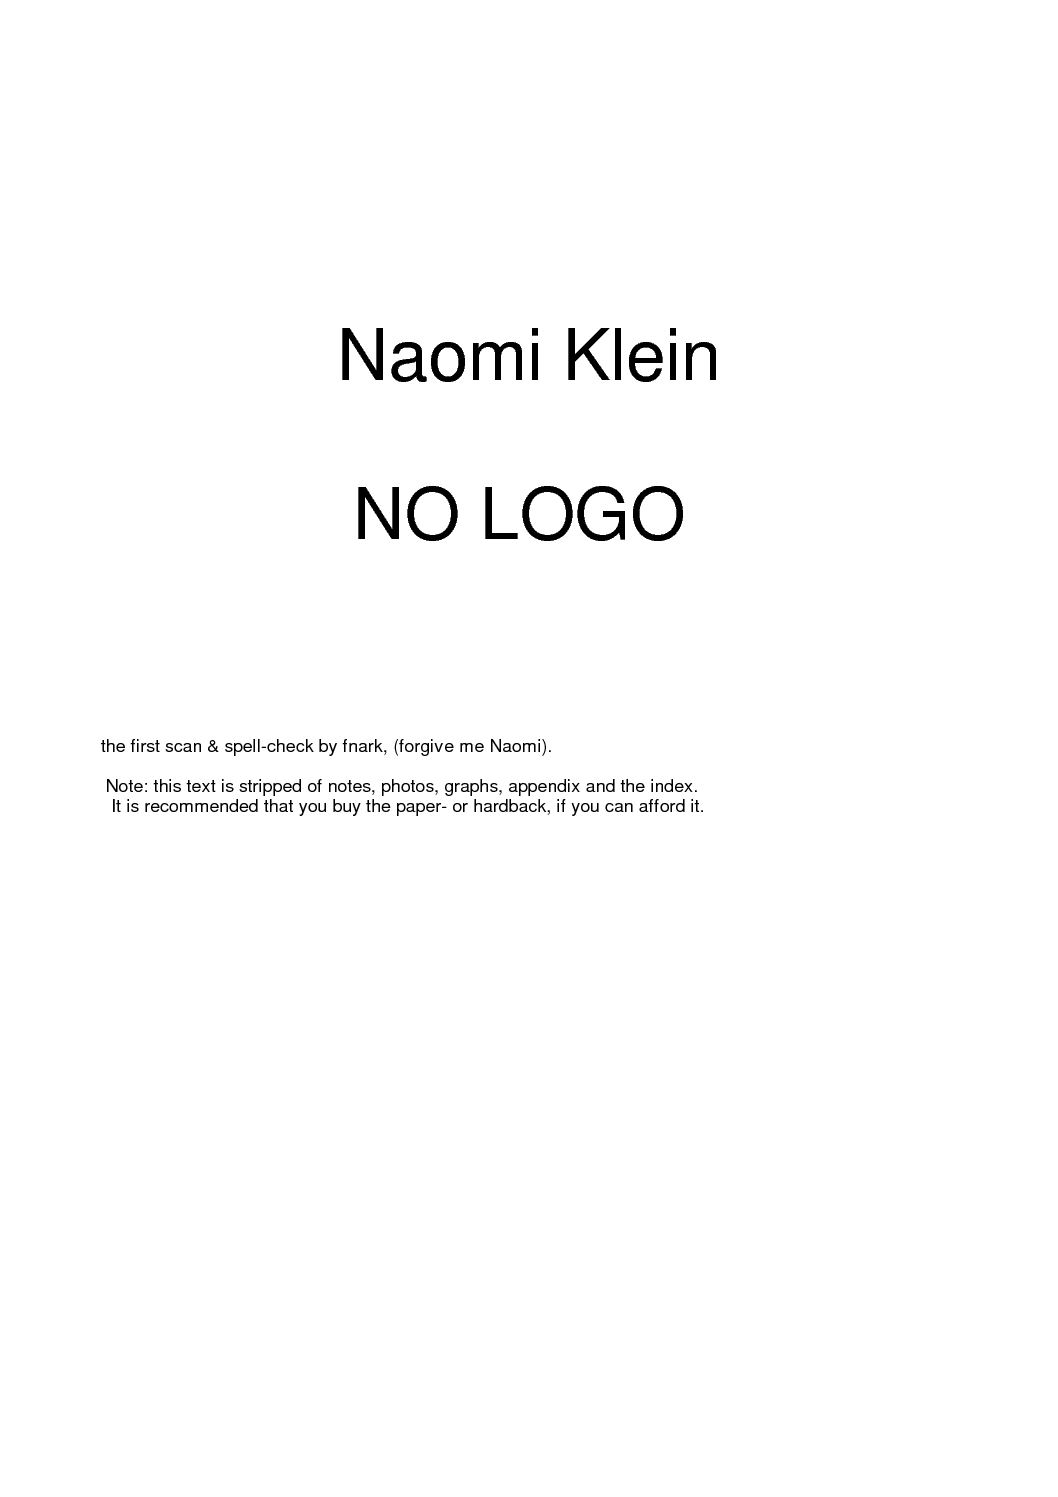 Calamo Klein Naomi No Logo Squishy Circuits Makers As Innovators Hardcover Target